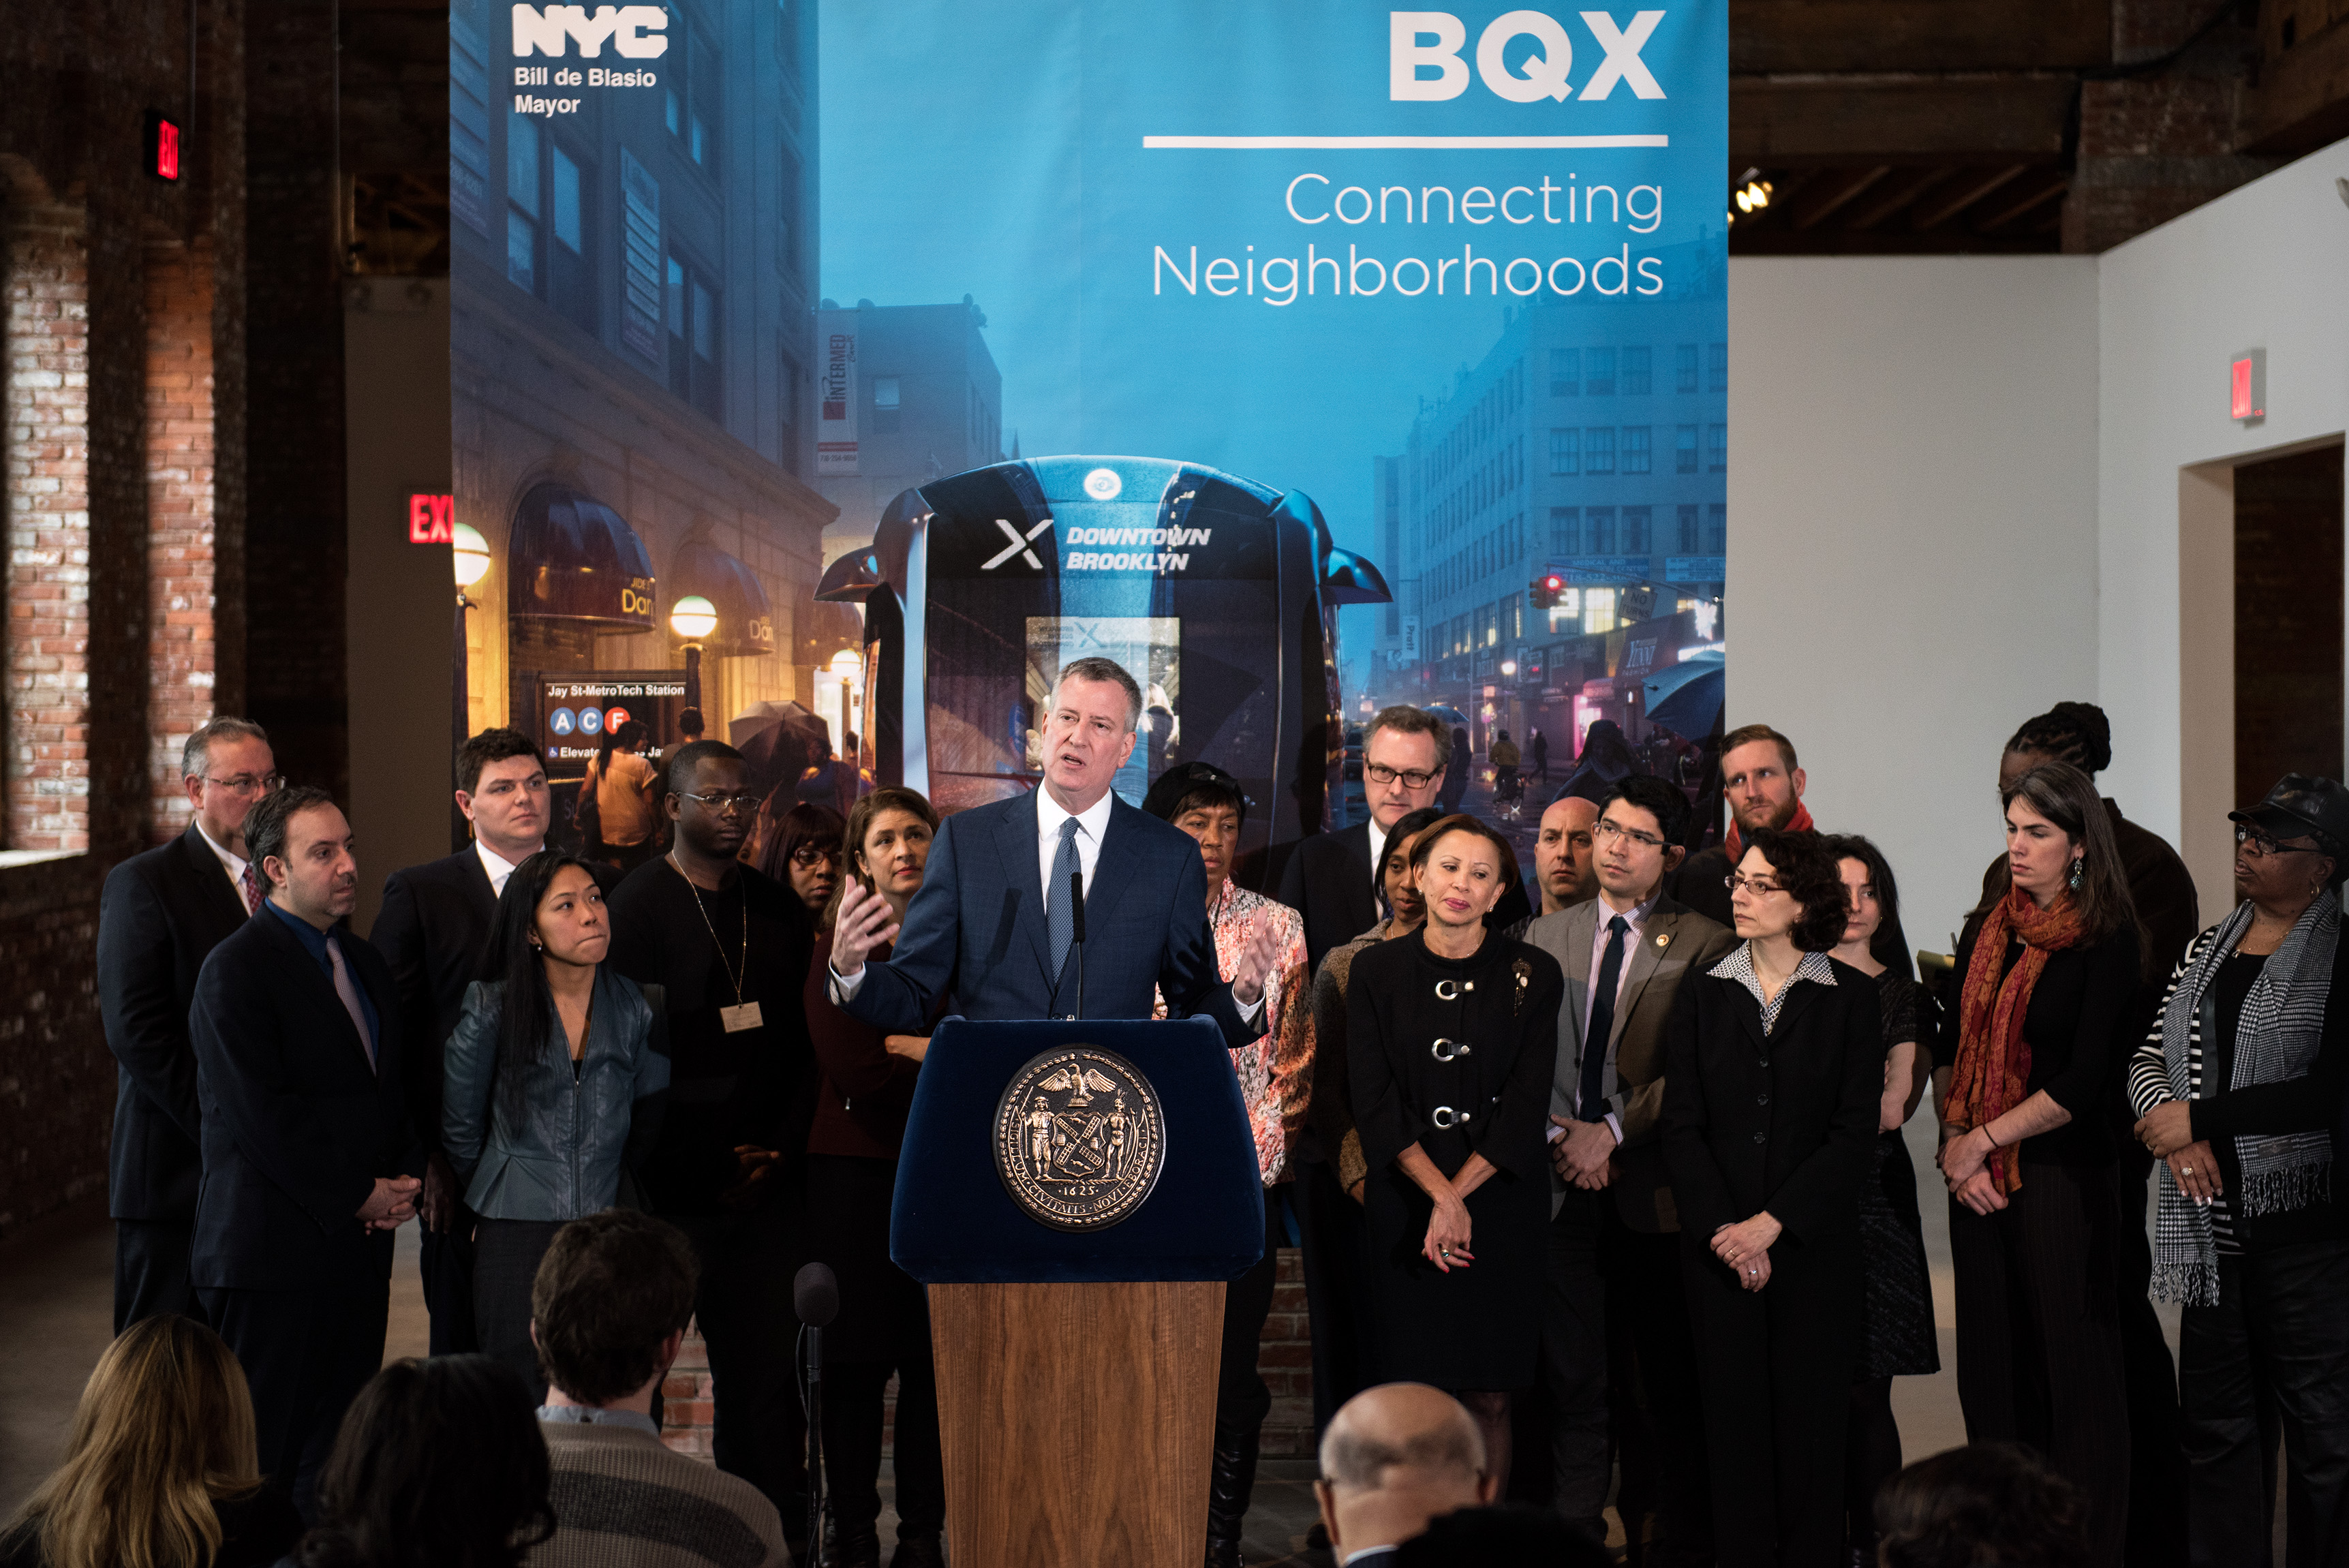 Mayor Bill de Blasio at a press conference about the Brooklyn Queens Connector today. (Photo: Demetrius Freeman/Mayoral Photography Office)